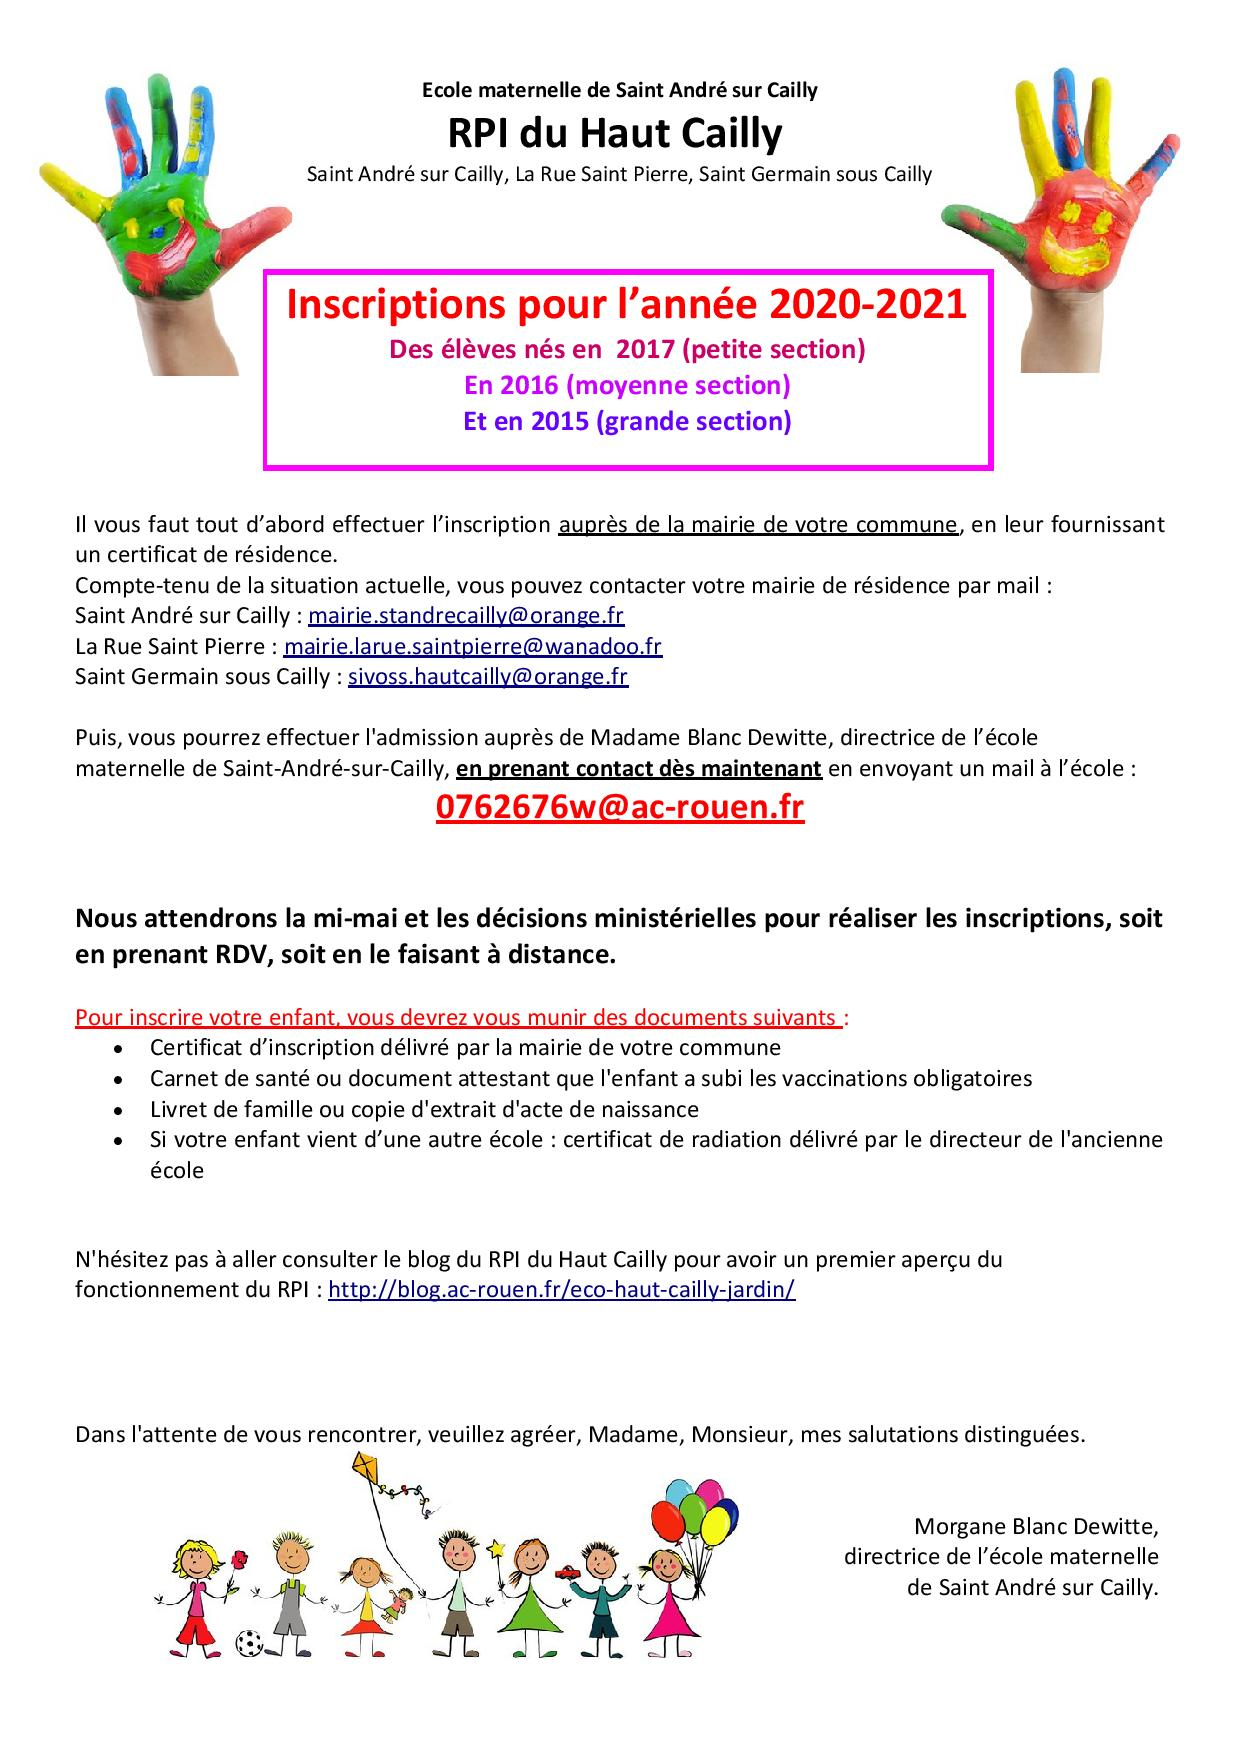 ECOLE - Inscriptions 2020